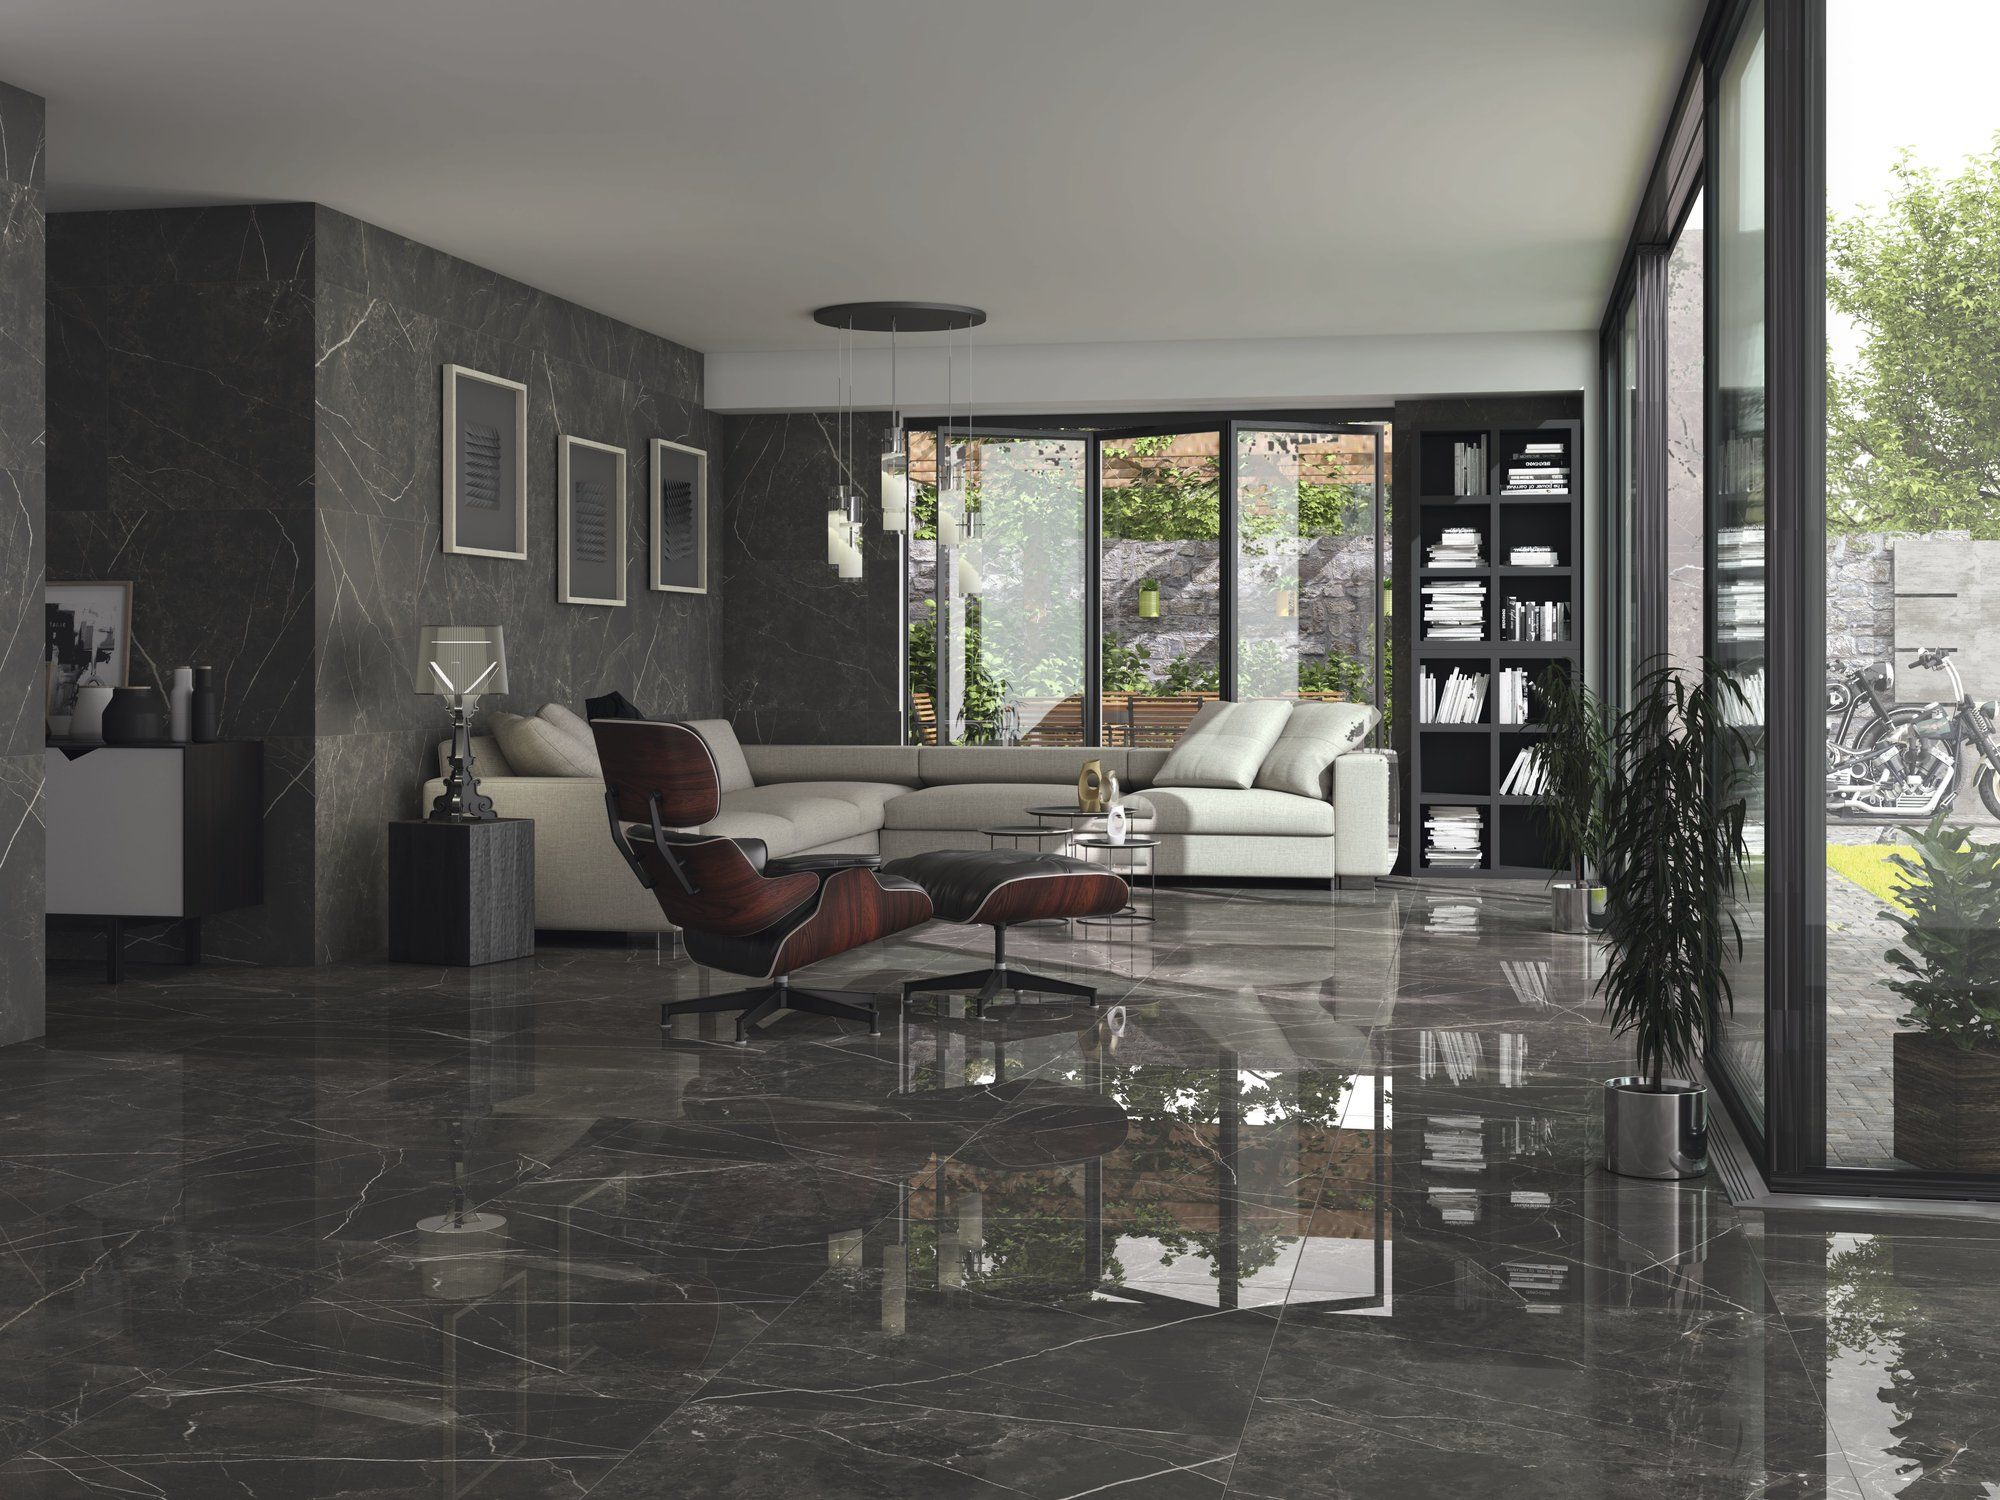 Dark Tranquility Is Here Black Jack 75x75cm From Ape Is A Marble Large Format Tile In Black This Tile Gives A Di Living Room Tiles Tile Bedroom Floor Design